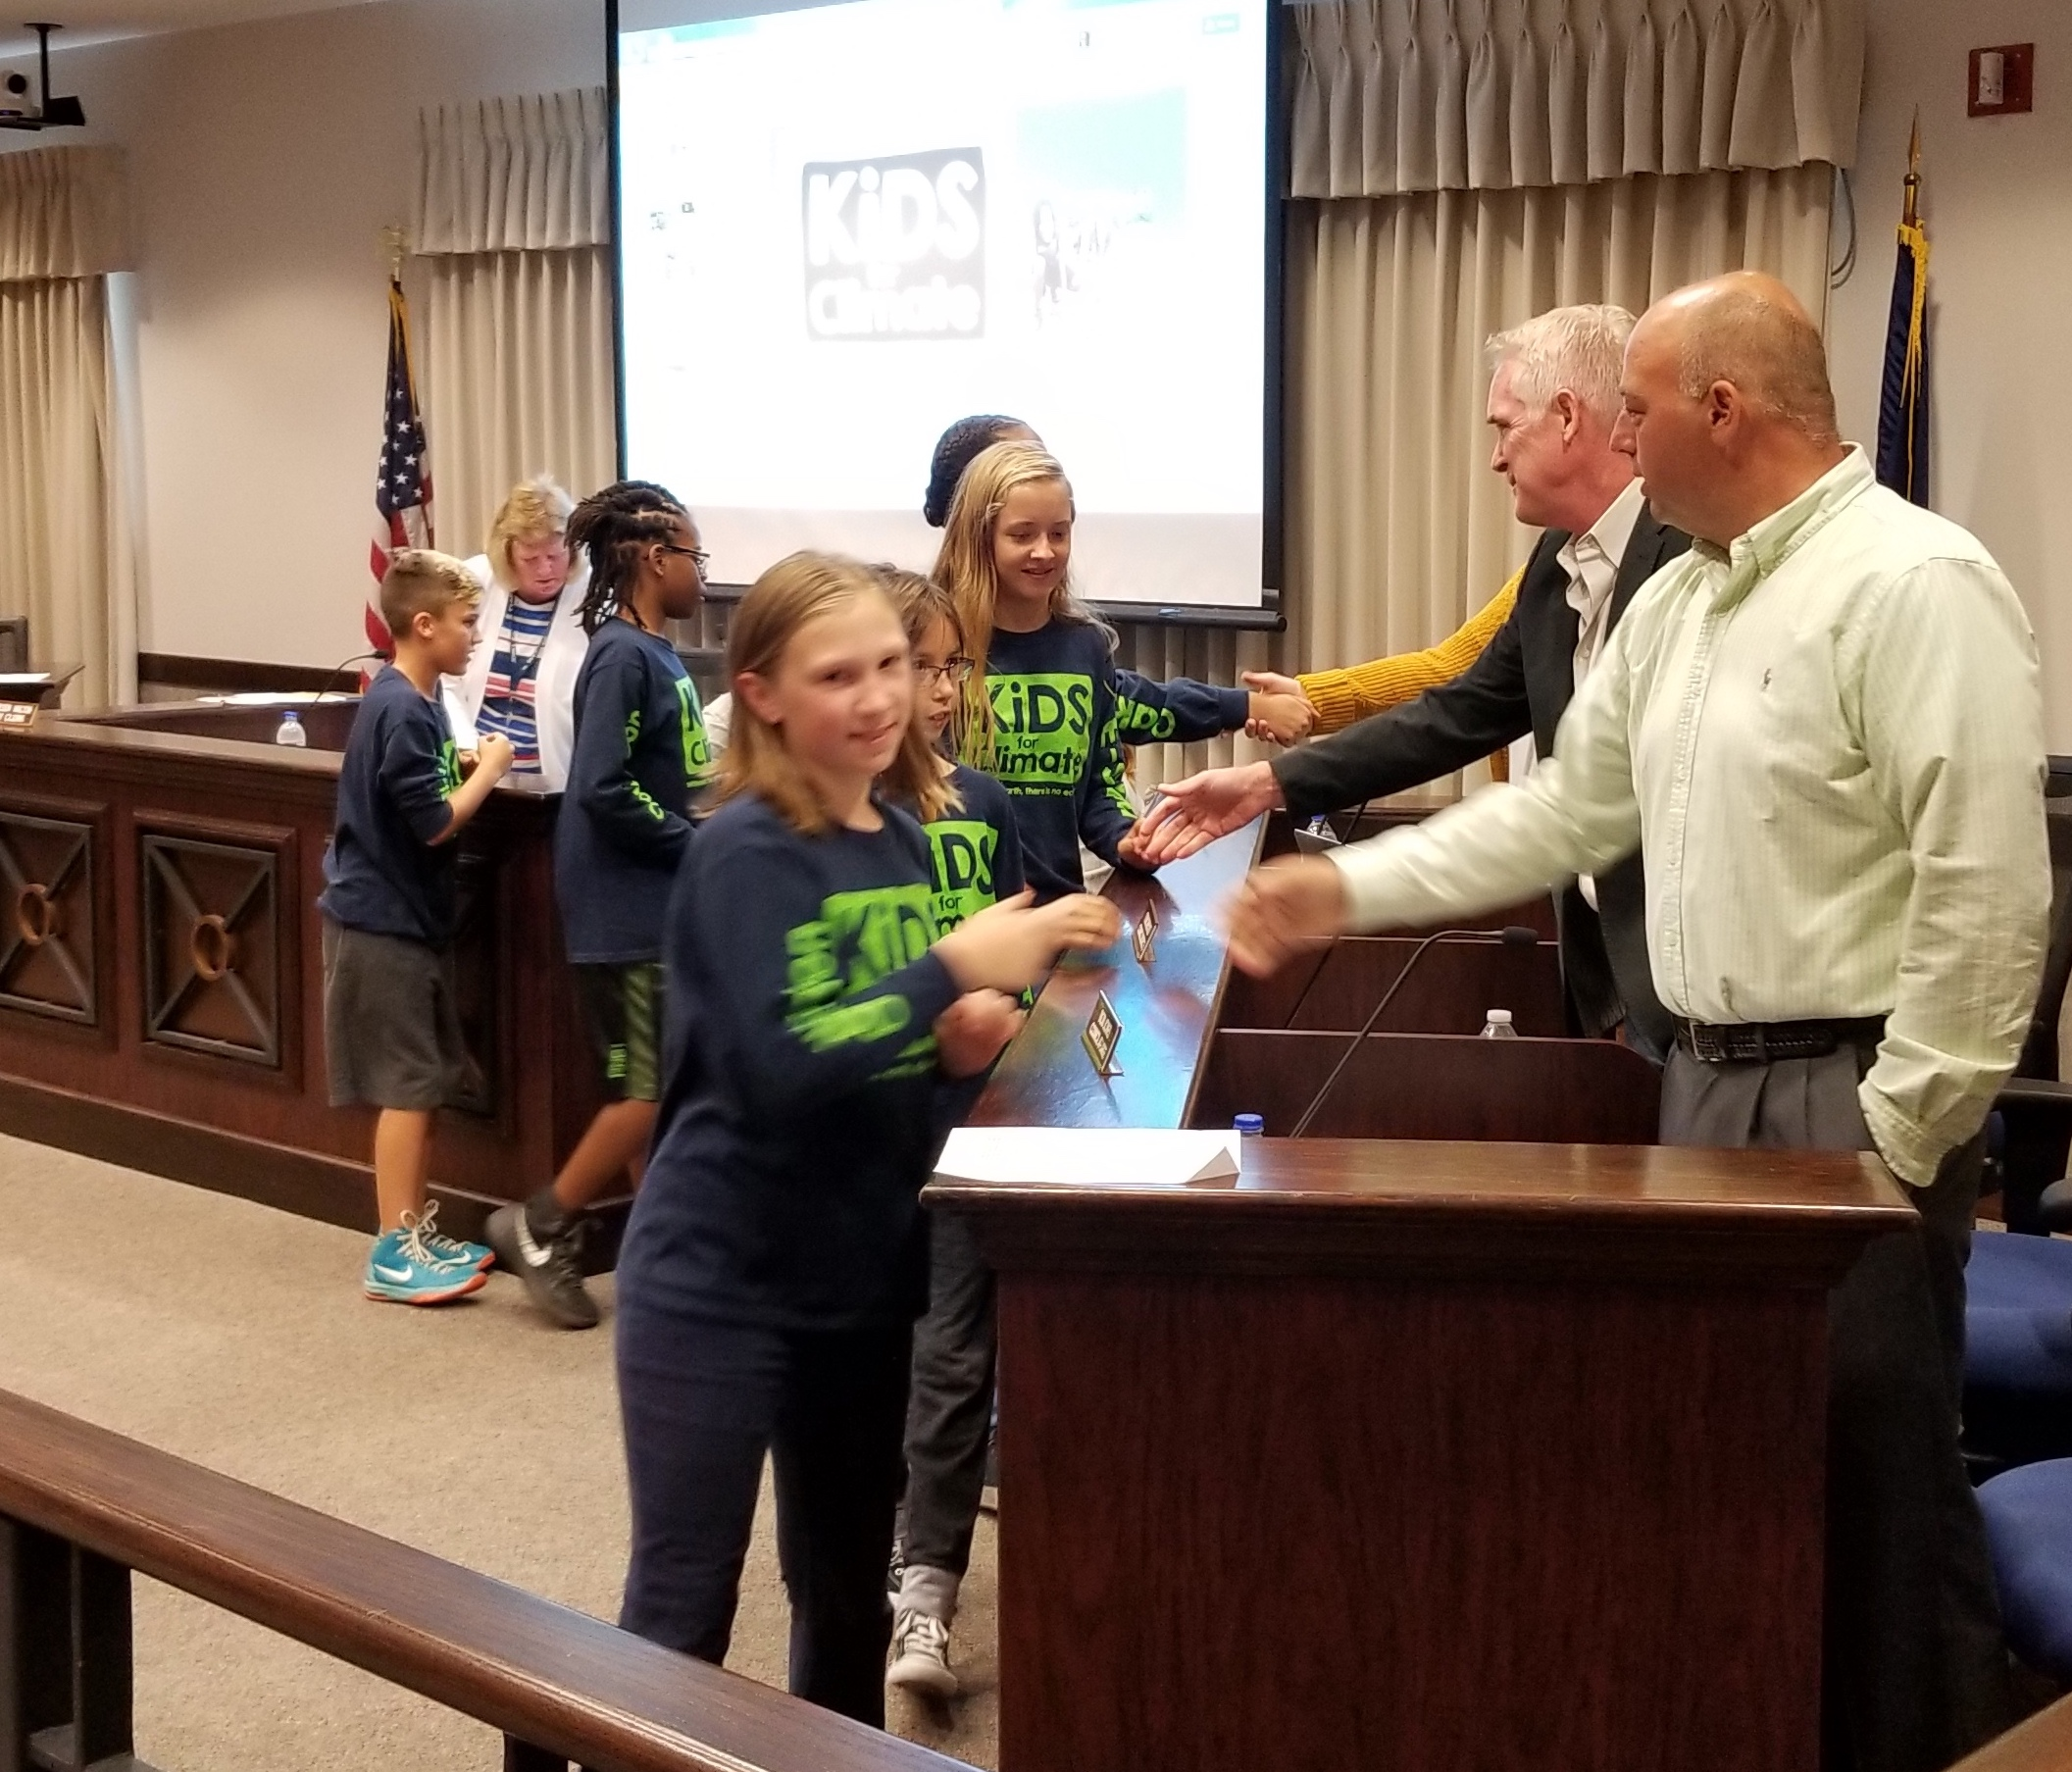 Oaklandon Kids for Climate, meet Lawrence city councilors before Sept. 5 meeting.